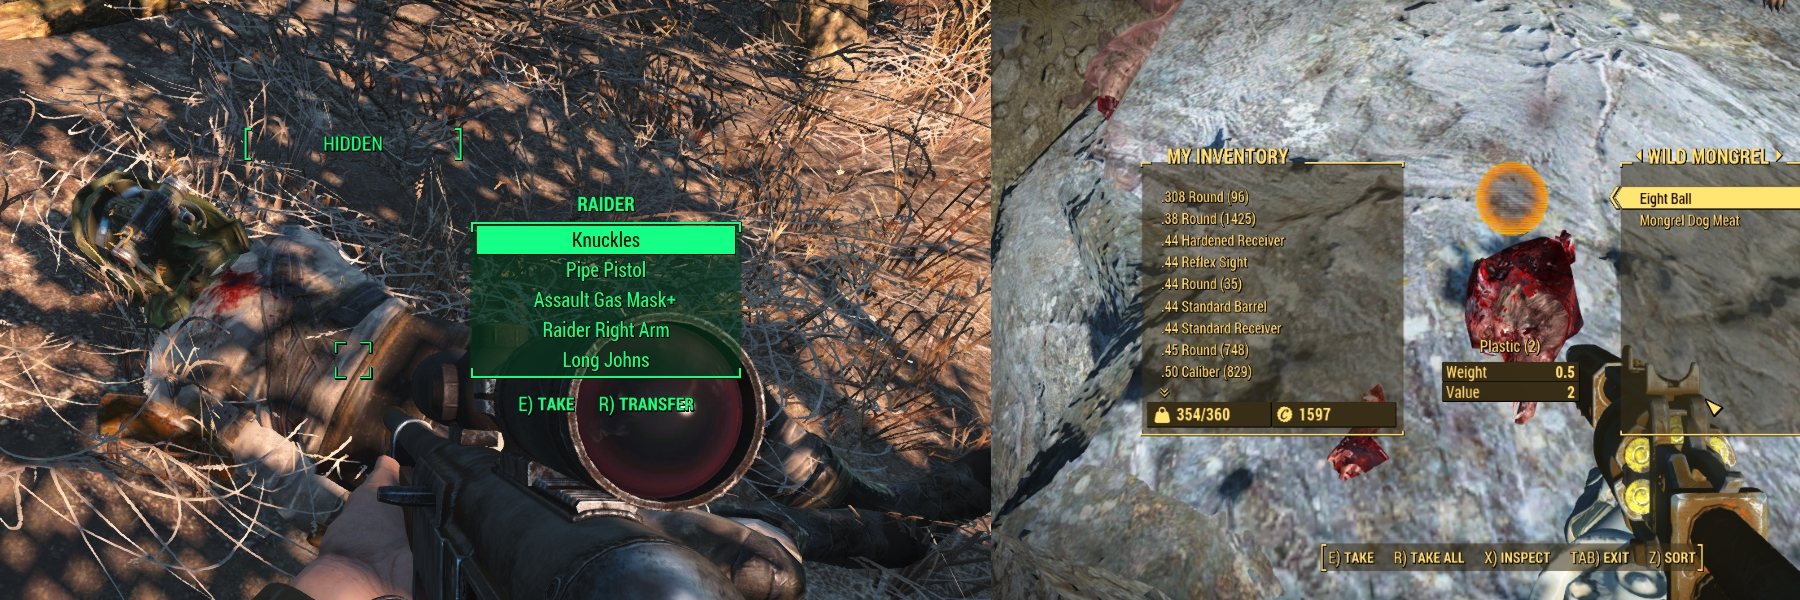 conscious interactive fallout 4 Loot